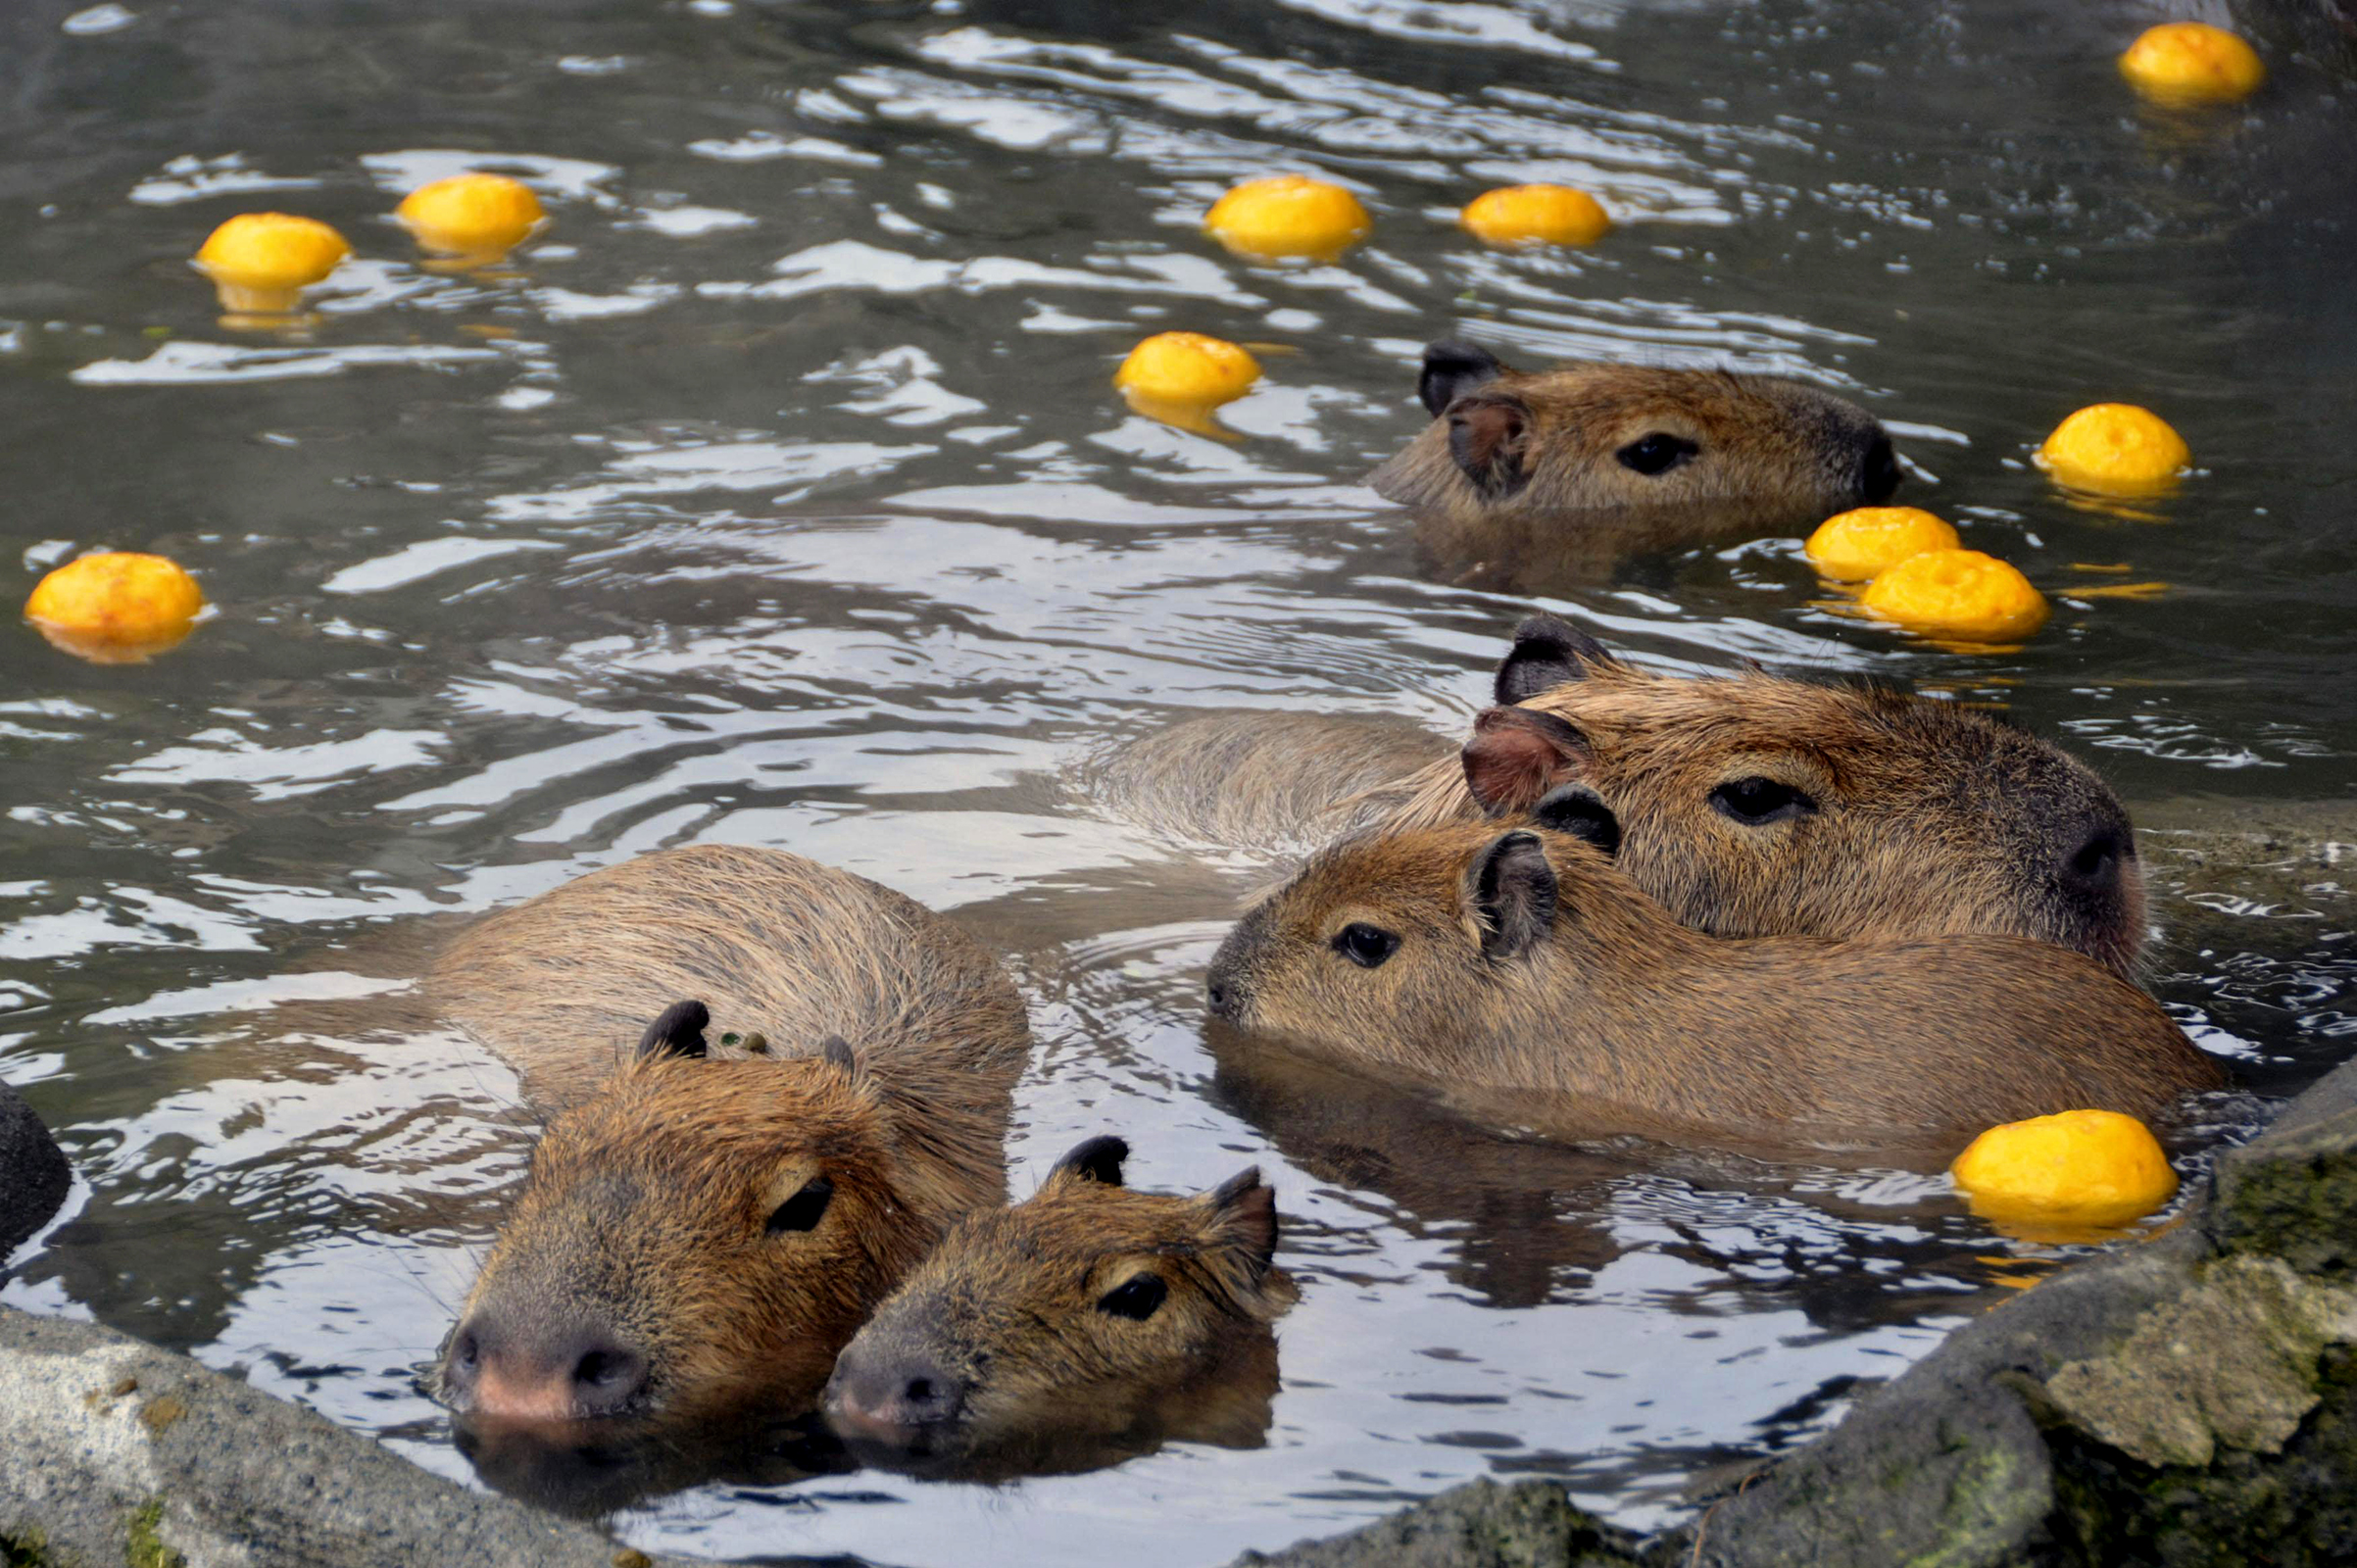 A pair of adult capybara and three babies take a yuzu-yu, or a hot bath with yuzu citrus fruits, a winter solstice ritual in Japan.